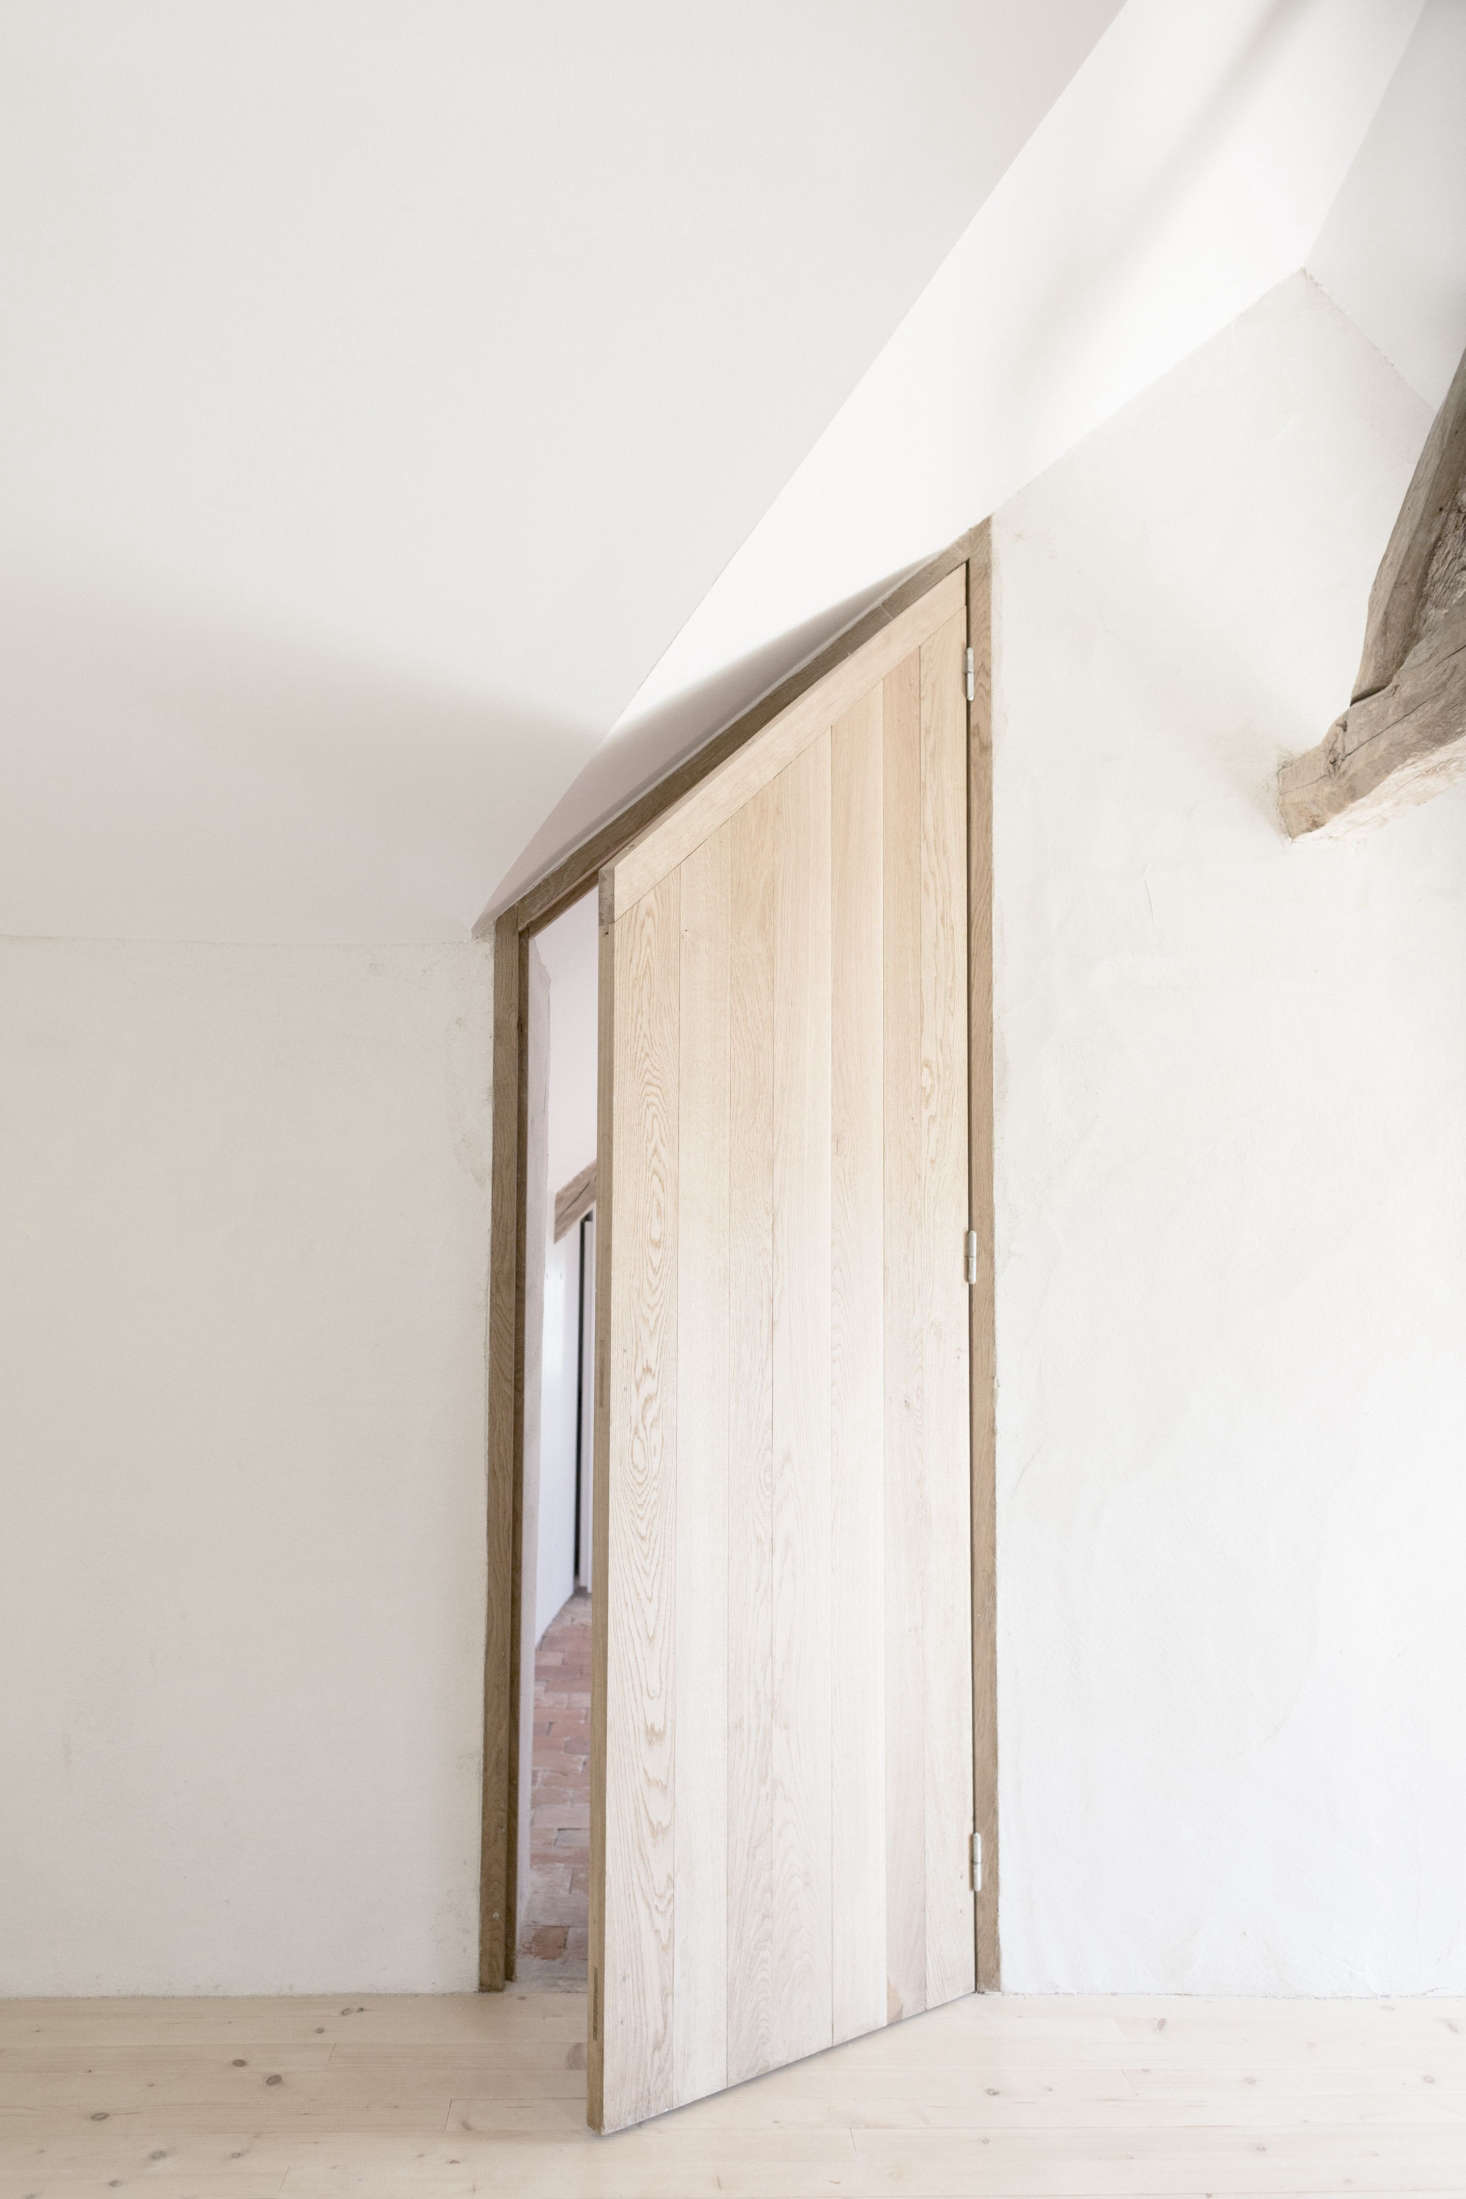 The silhouette of the door follows the roofline.